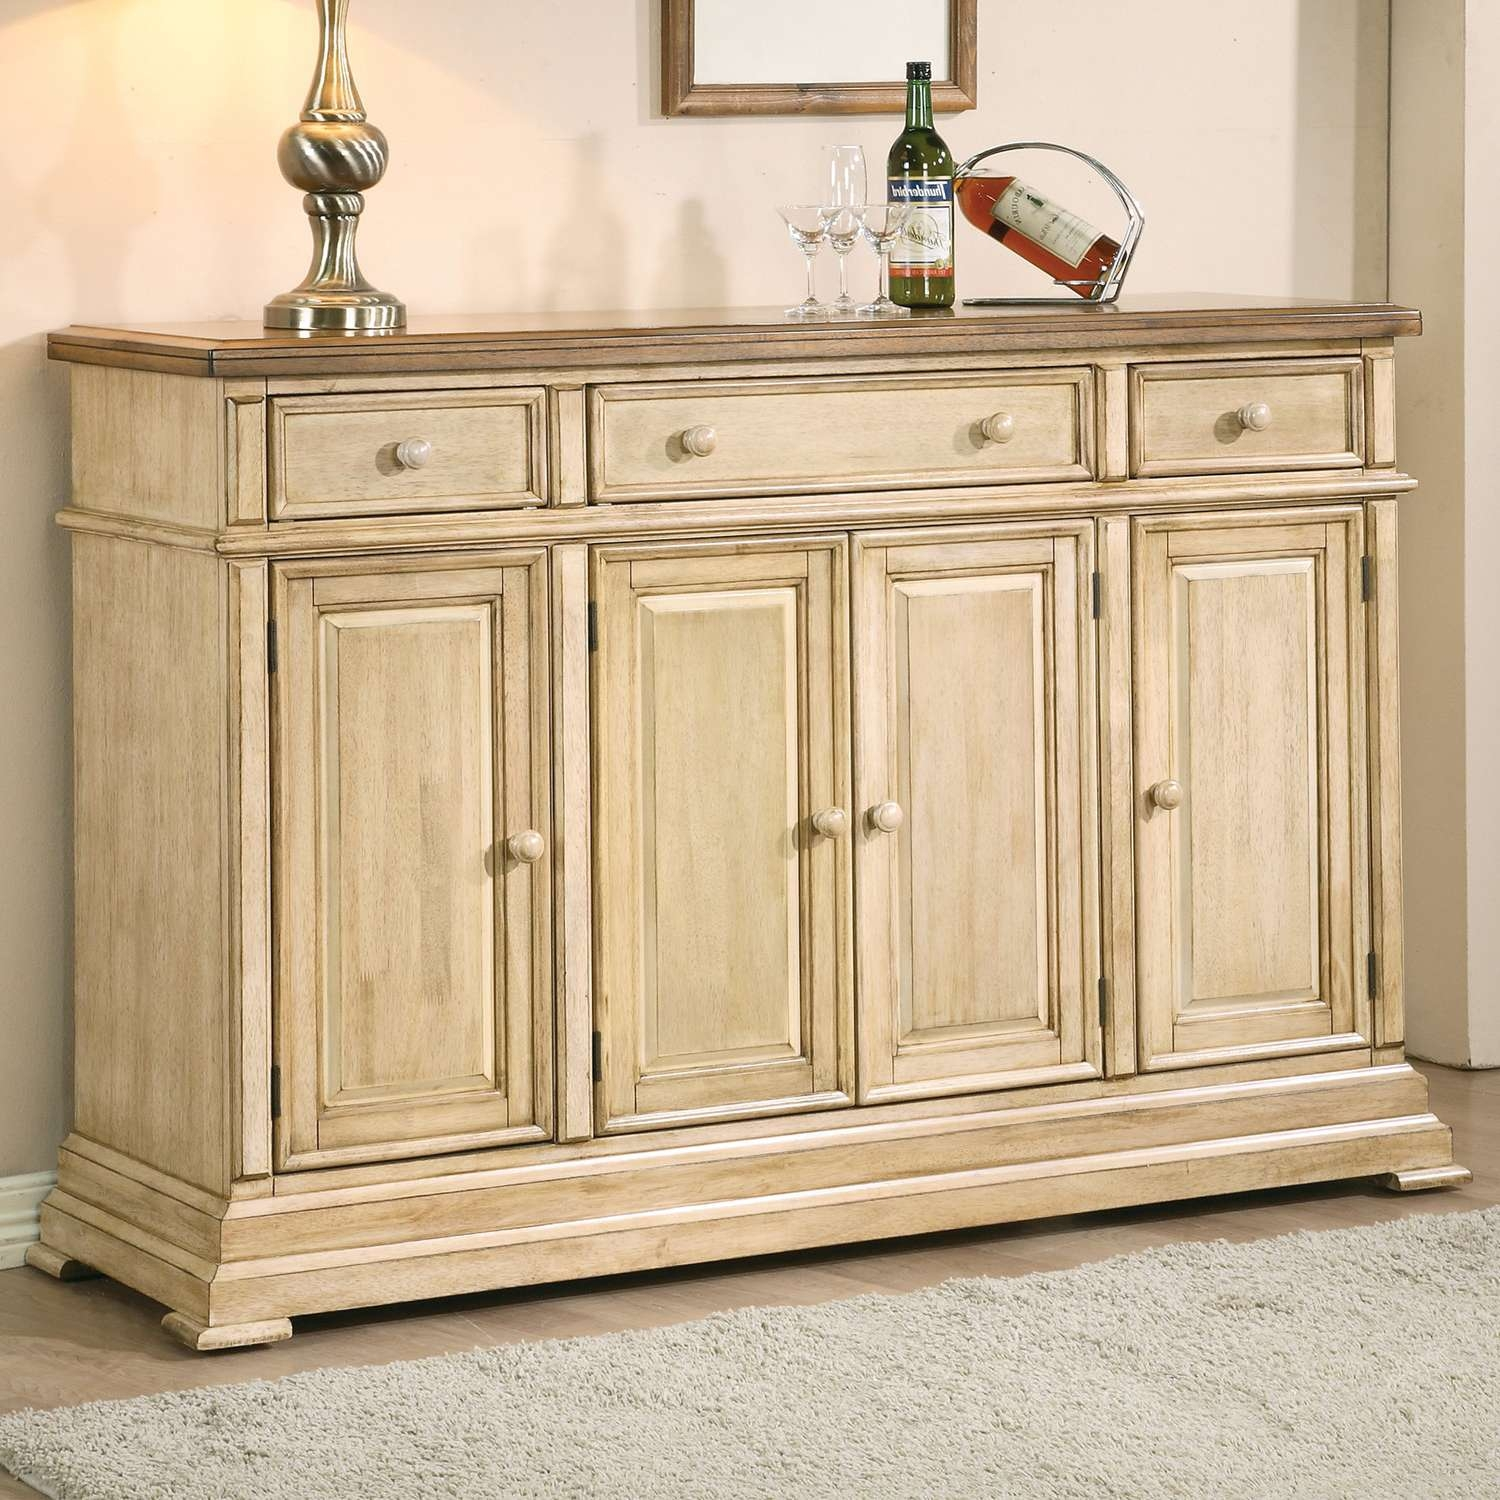 Best Of White Buffet Sideboard – Bjdgjy Intended For Wooden Sideboards And Buffets (View 15 of 20)